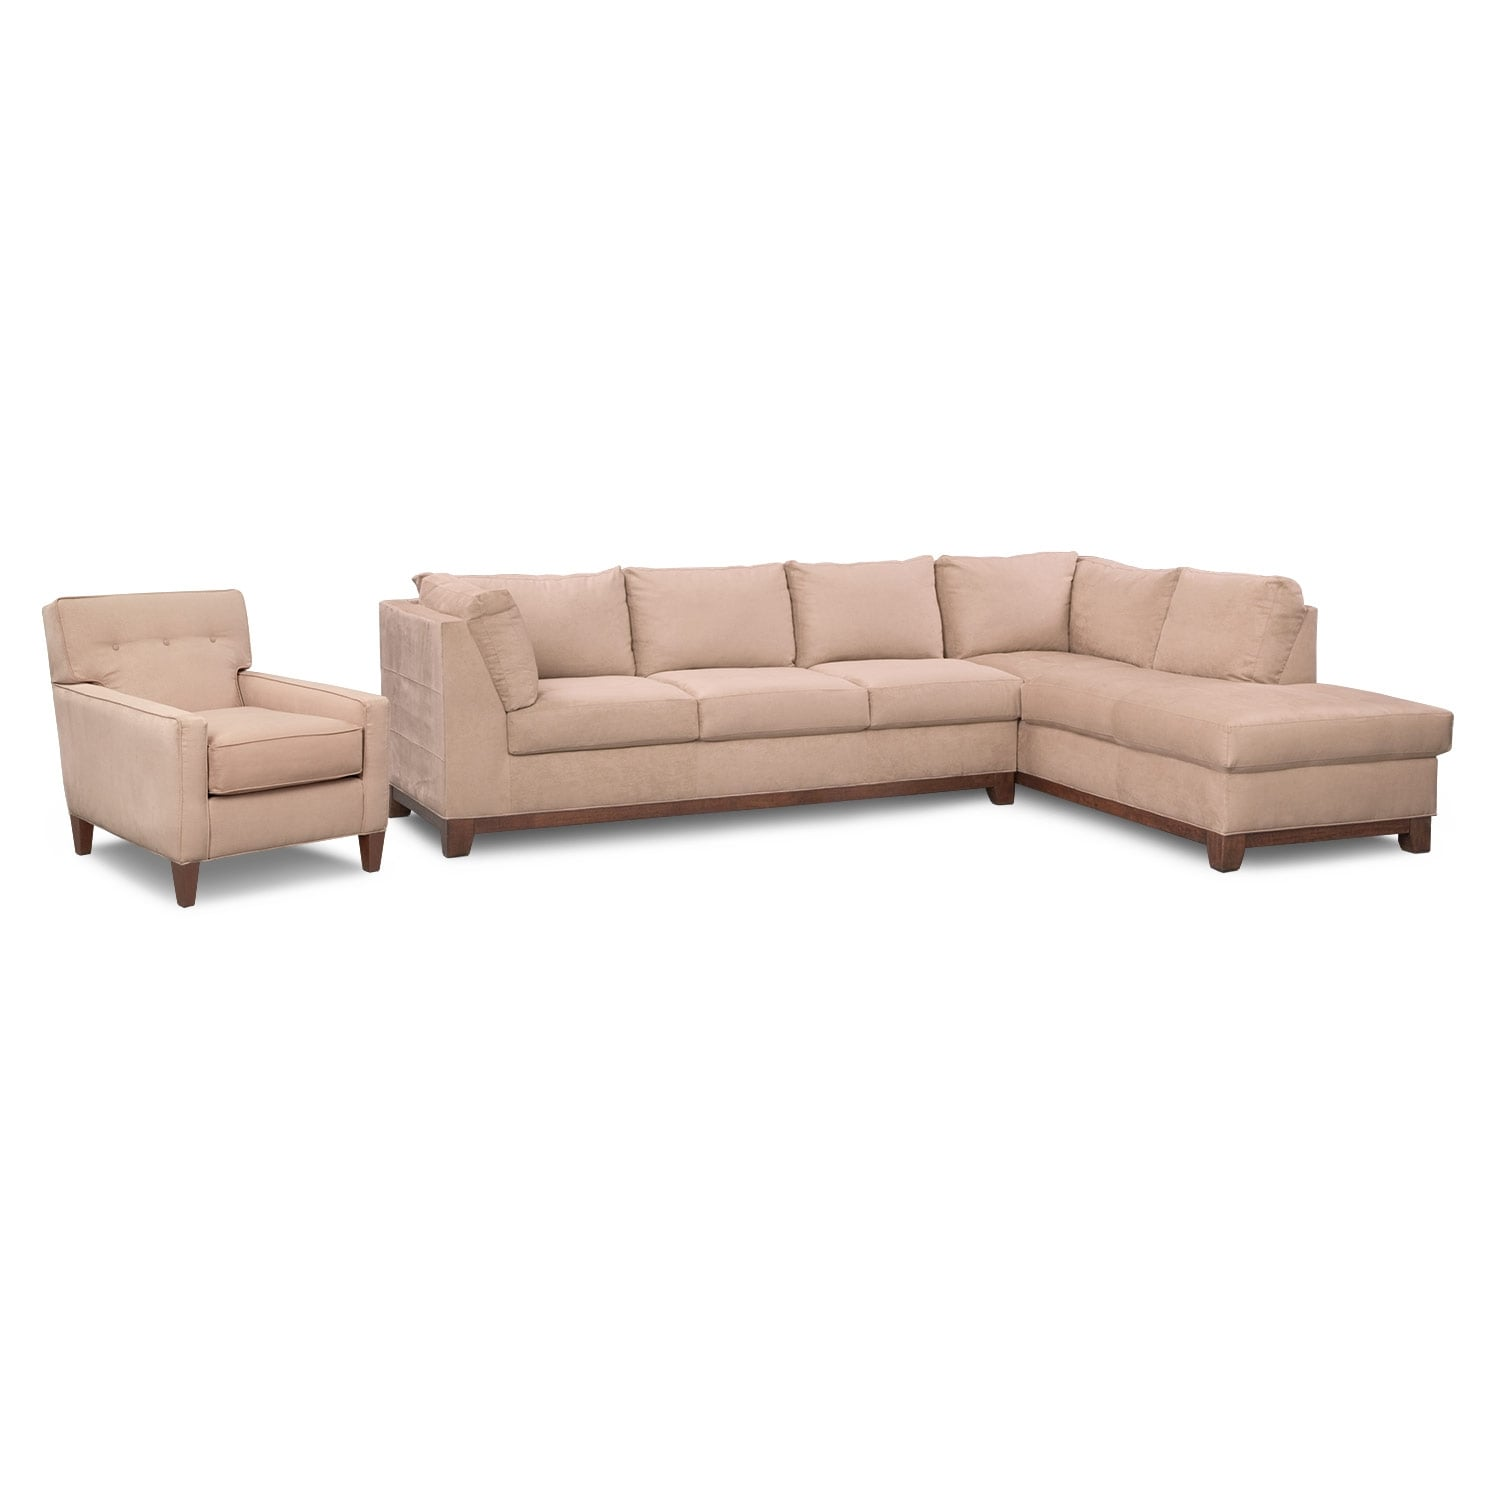 Soho 2-Piece Sectional with Right-Facing Chaise and Chair - Cobblestone